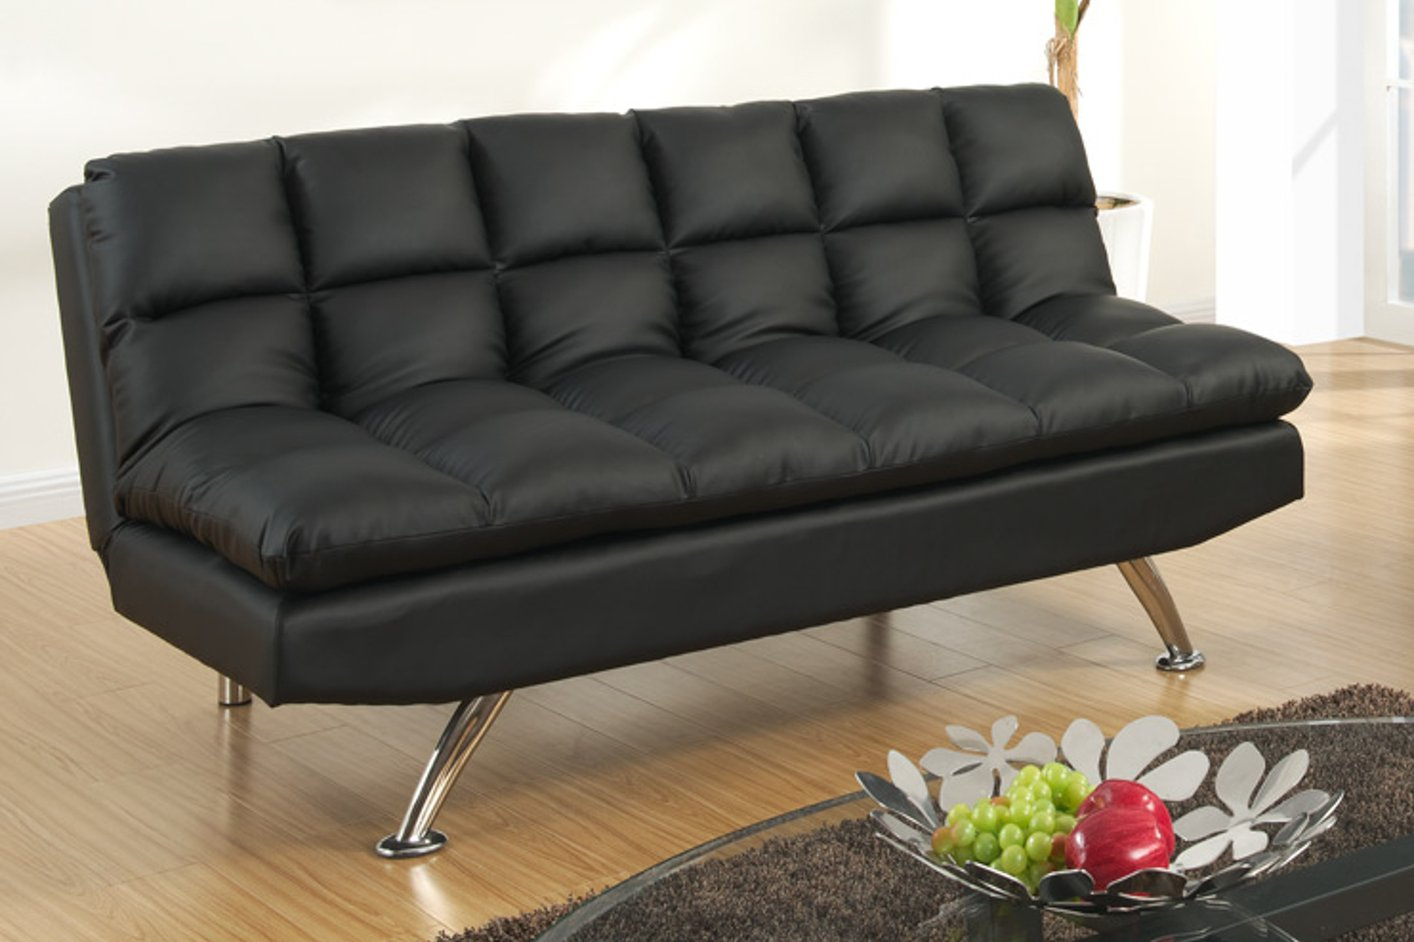 Contemporary Black Leather Twin Size Sofa Sleeper For Modern Living Space  With Natural Wooden Floor And